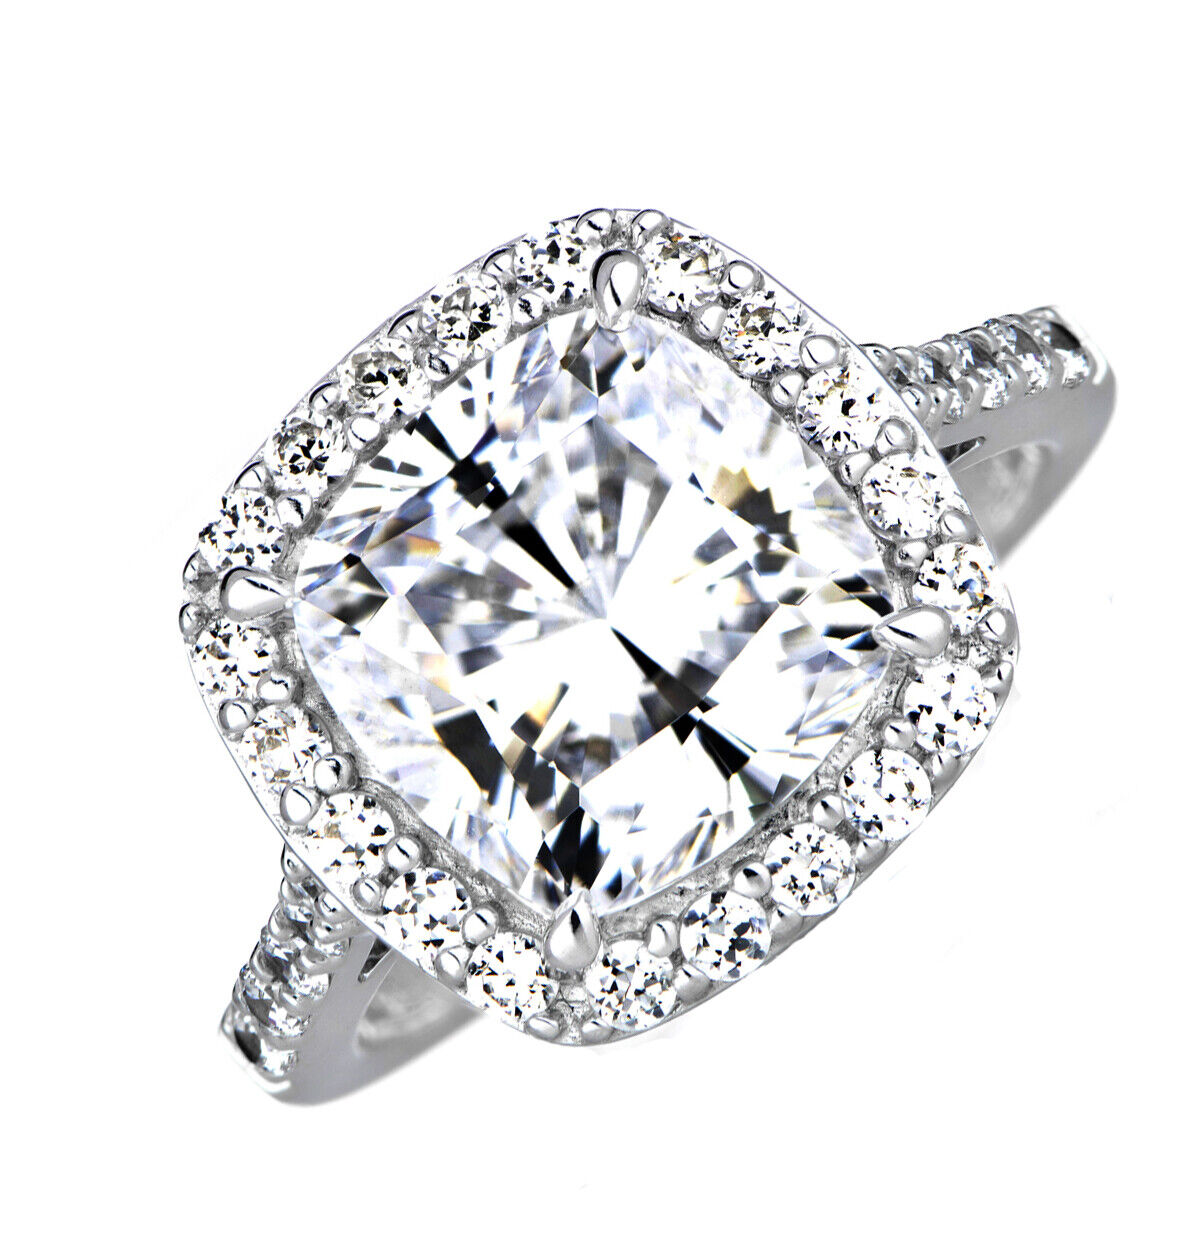 GIA Certified Diamond Engagement Ring  2.65 CT Cushion Cut Platinum VVS1